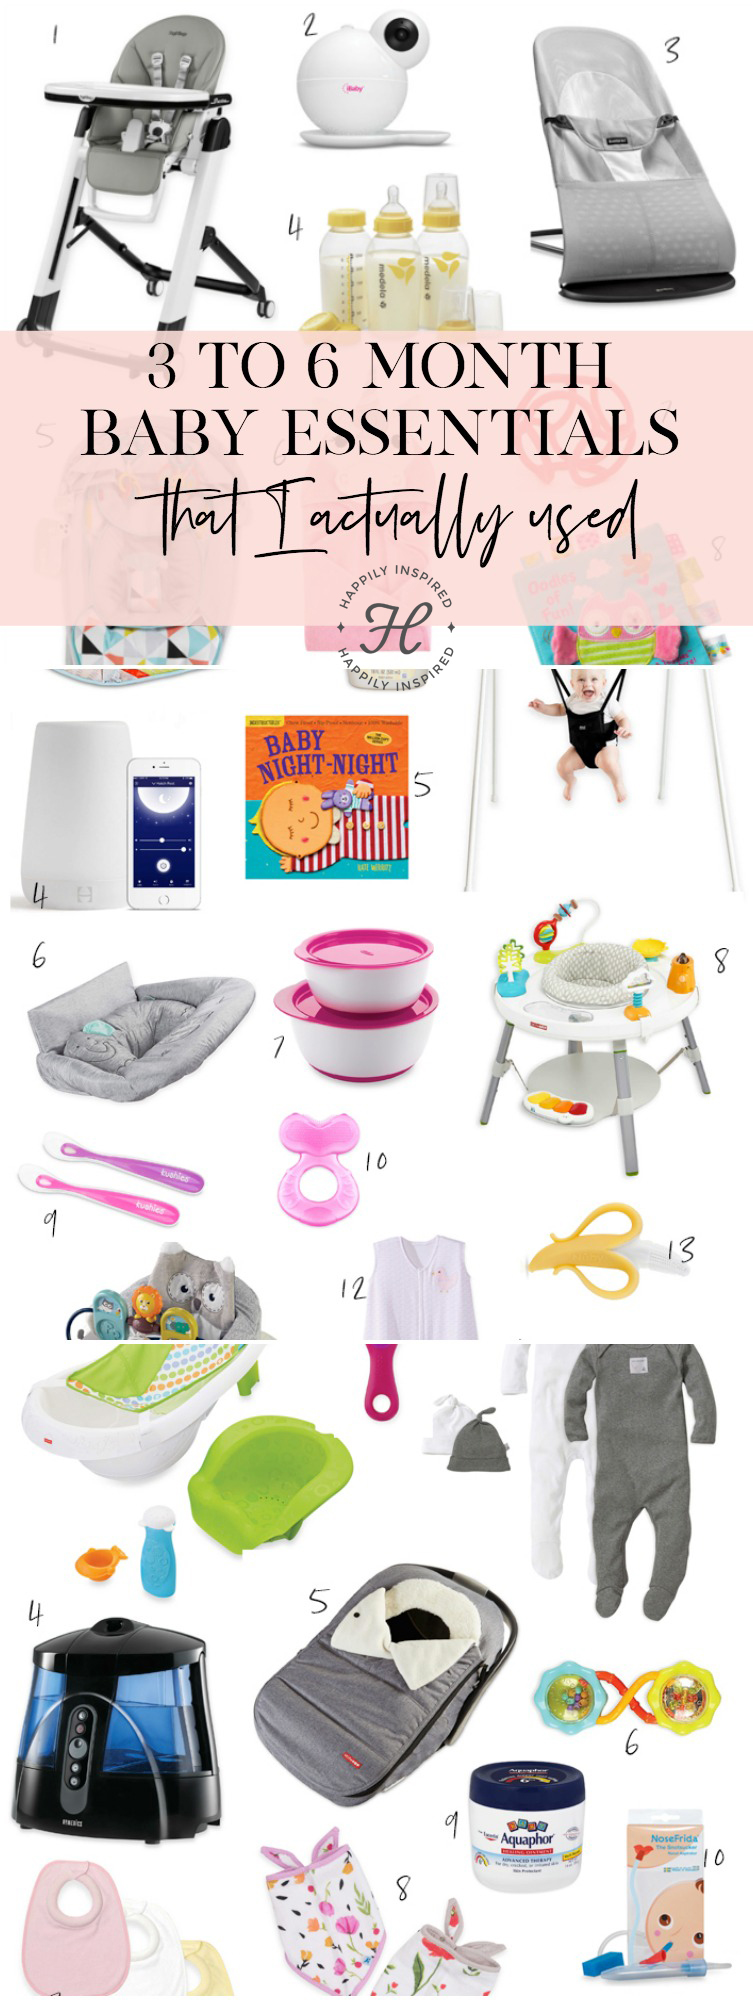 3-6 baby month essentials